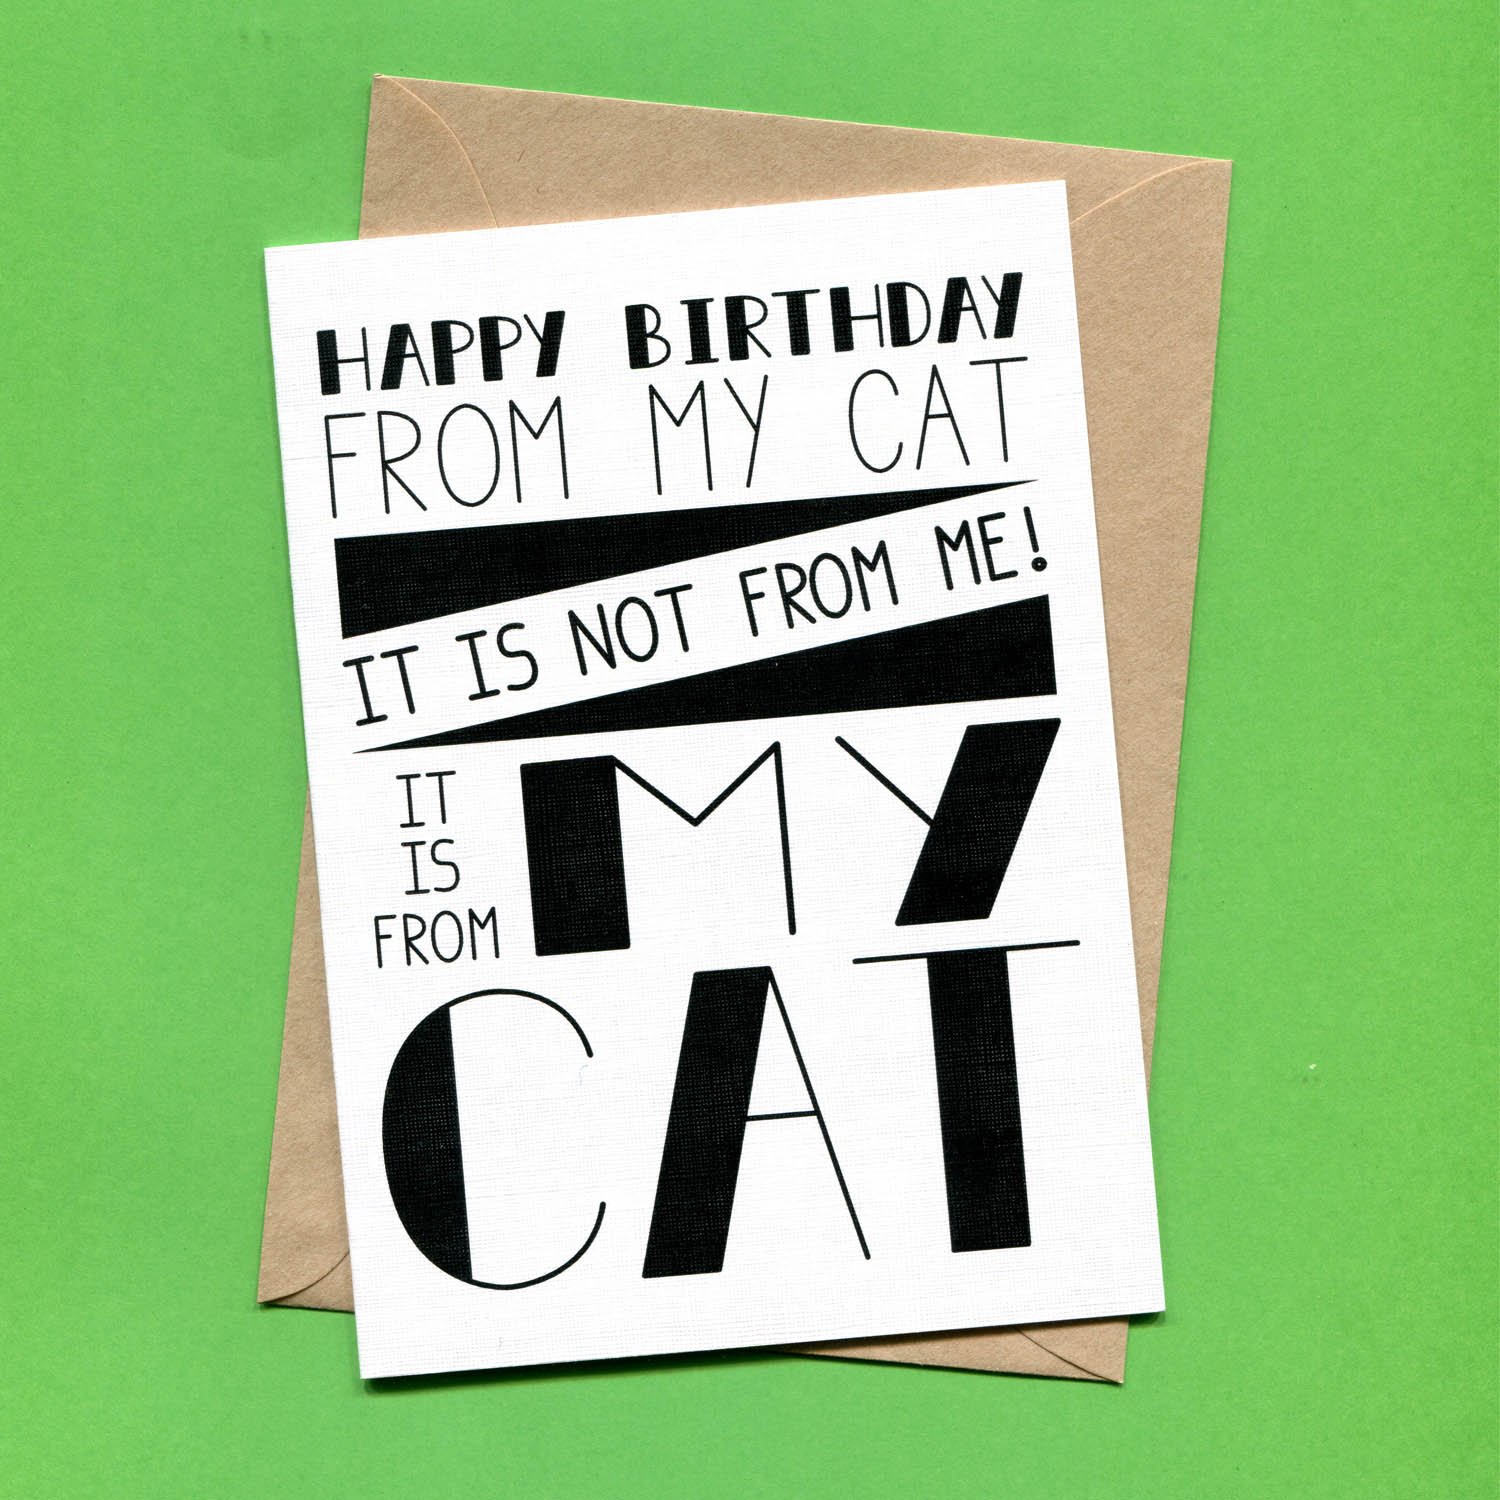 Catalogue_Things by Bean Happy Birthday from the Cat Greeting Card.jpg